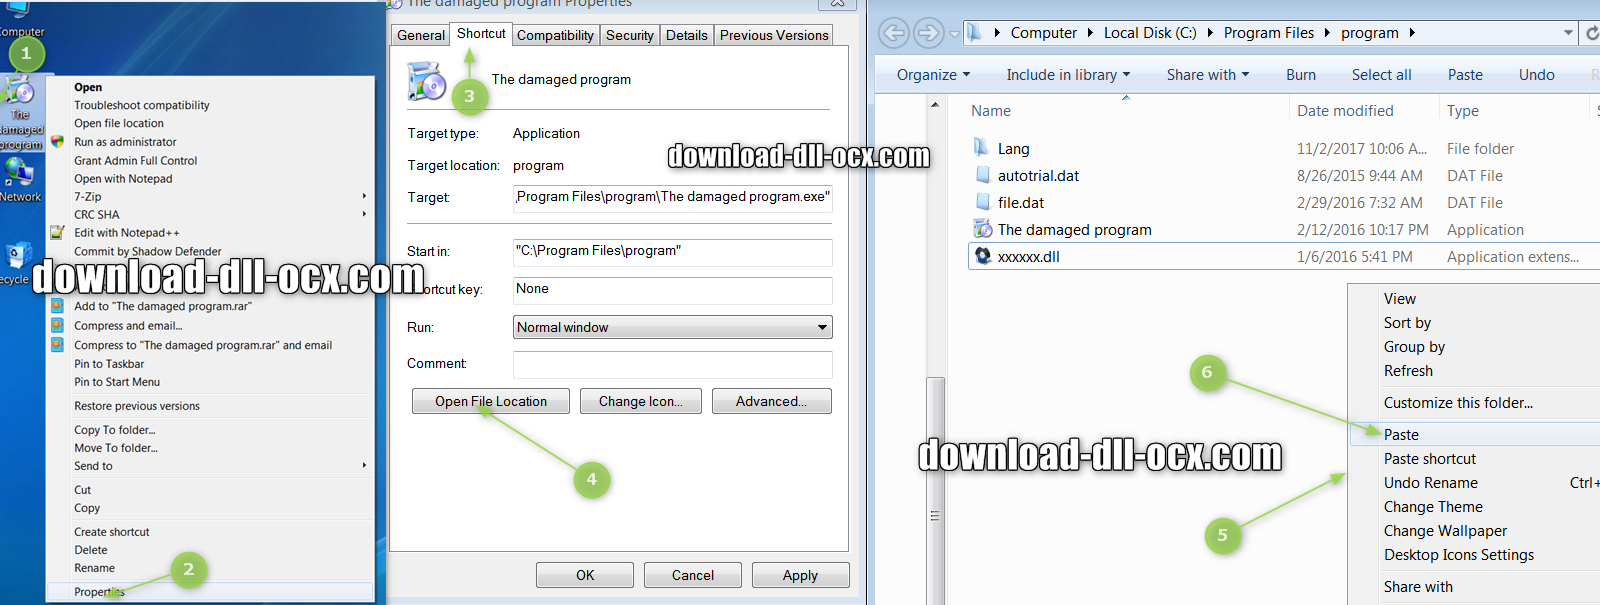 how to install libgimpthumb-2.0-0.dll file? for fix missing